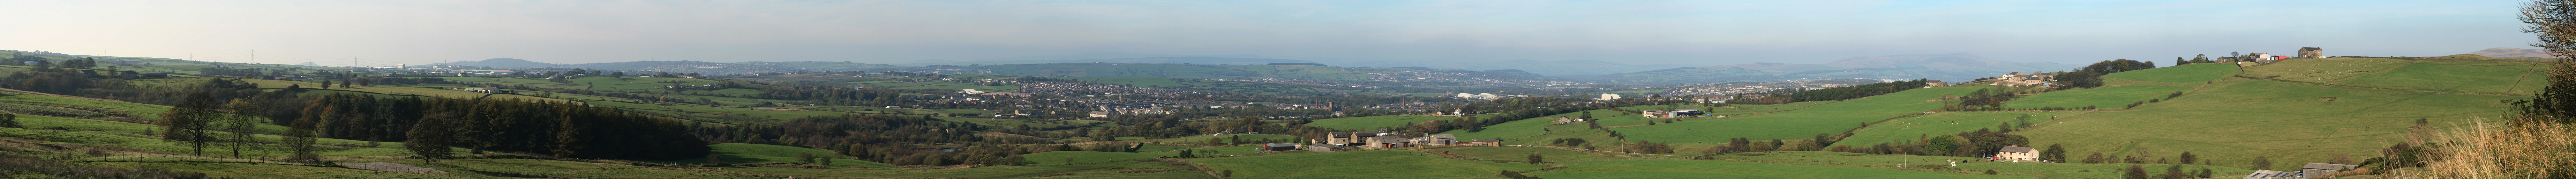 Panorama of the Borough of Hyndburn from a viewpoint on B6232 road